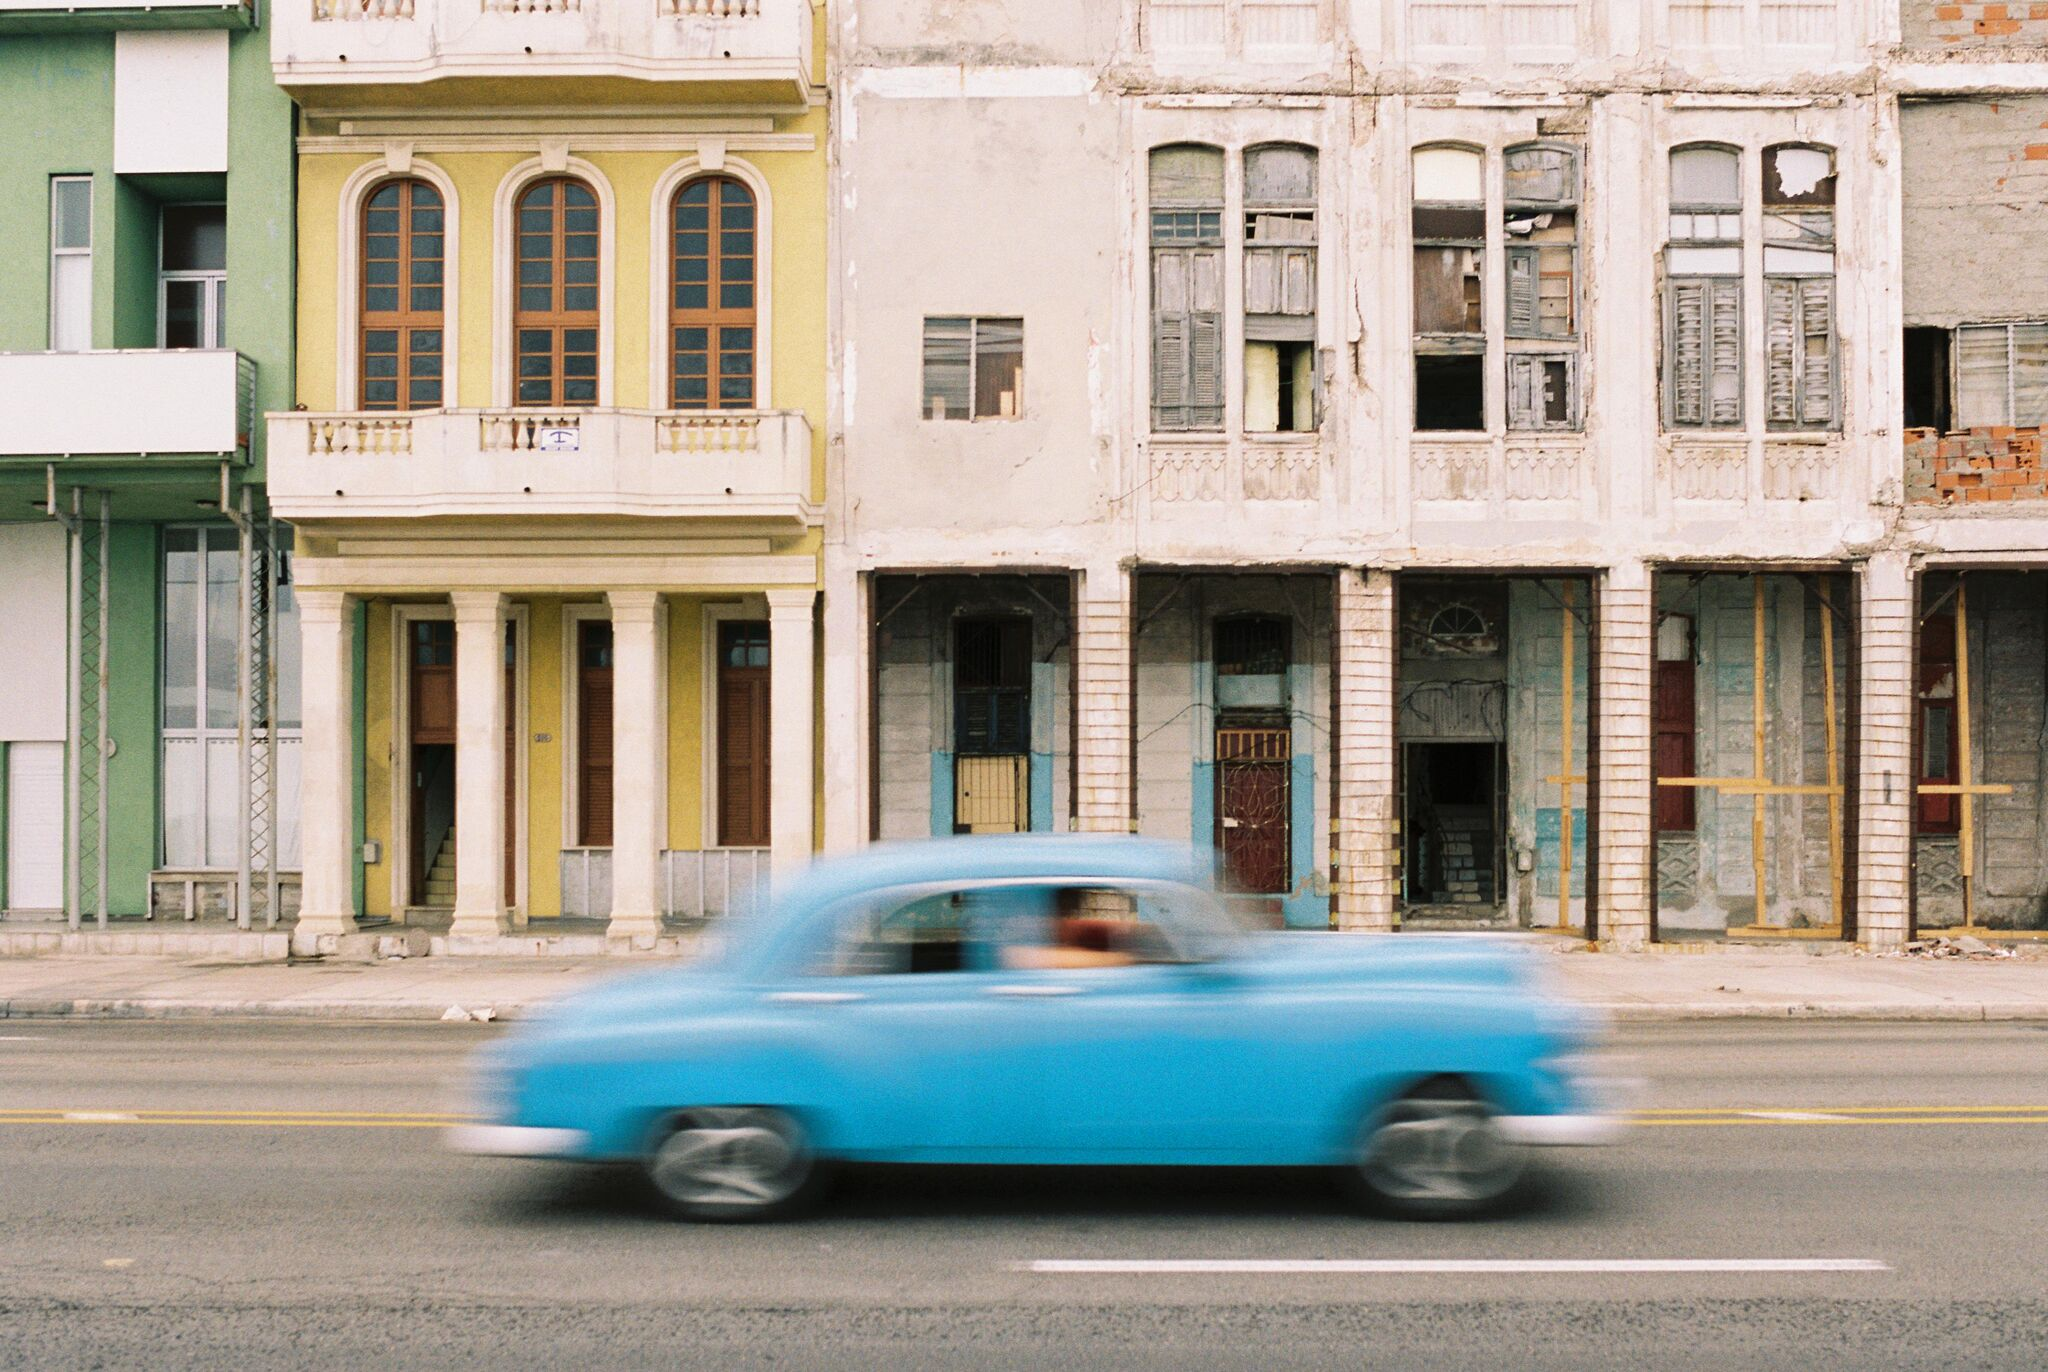 Car driving by in Cuba.